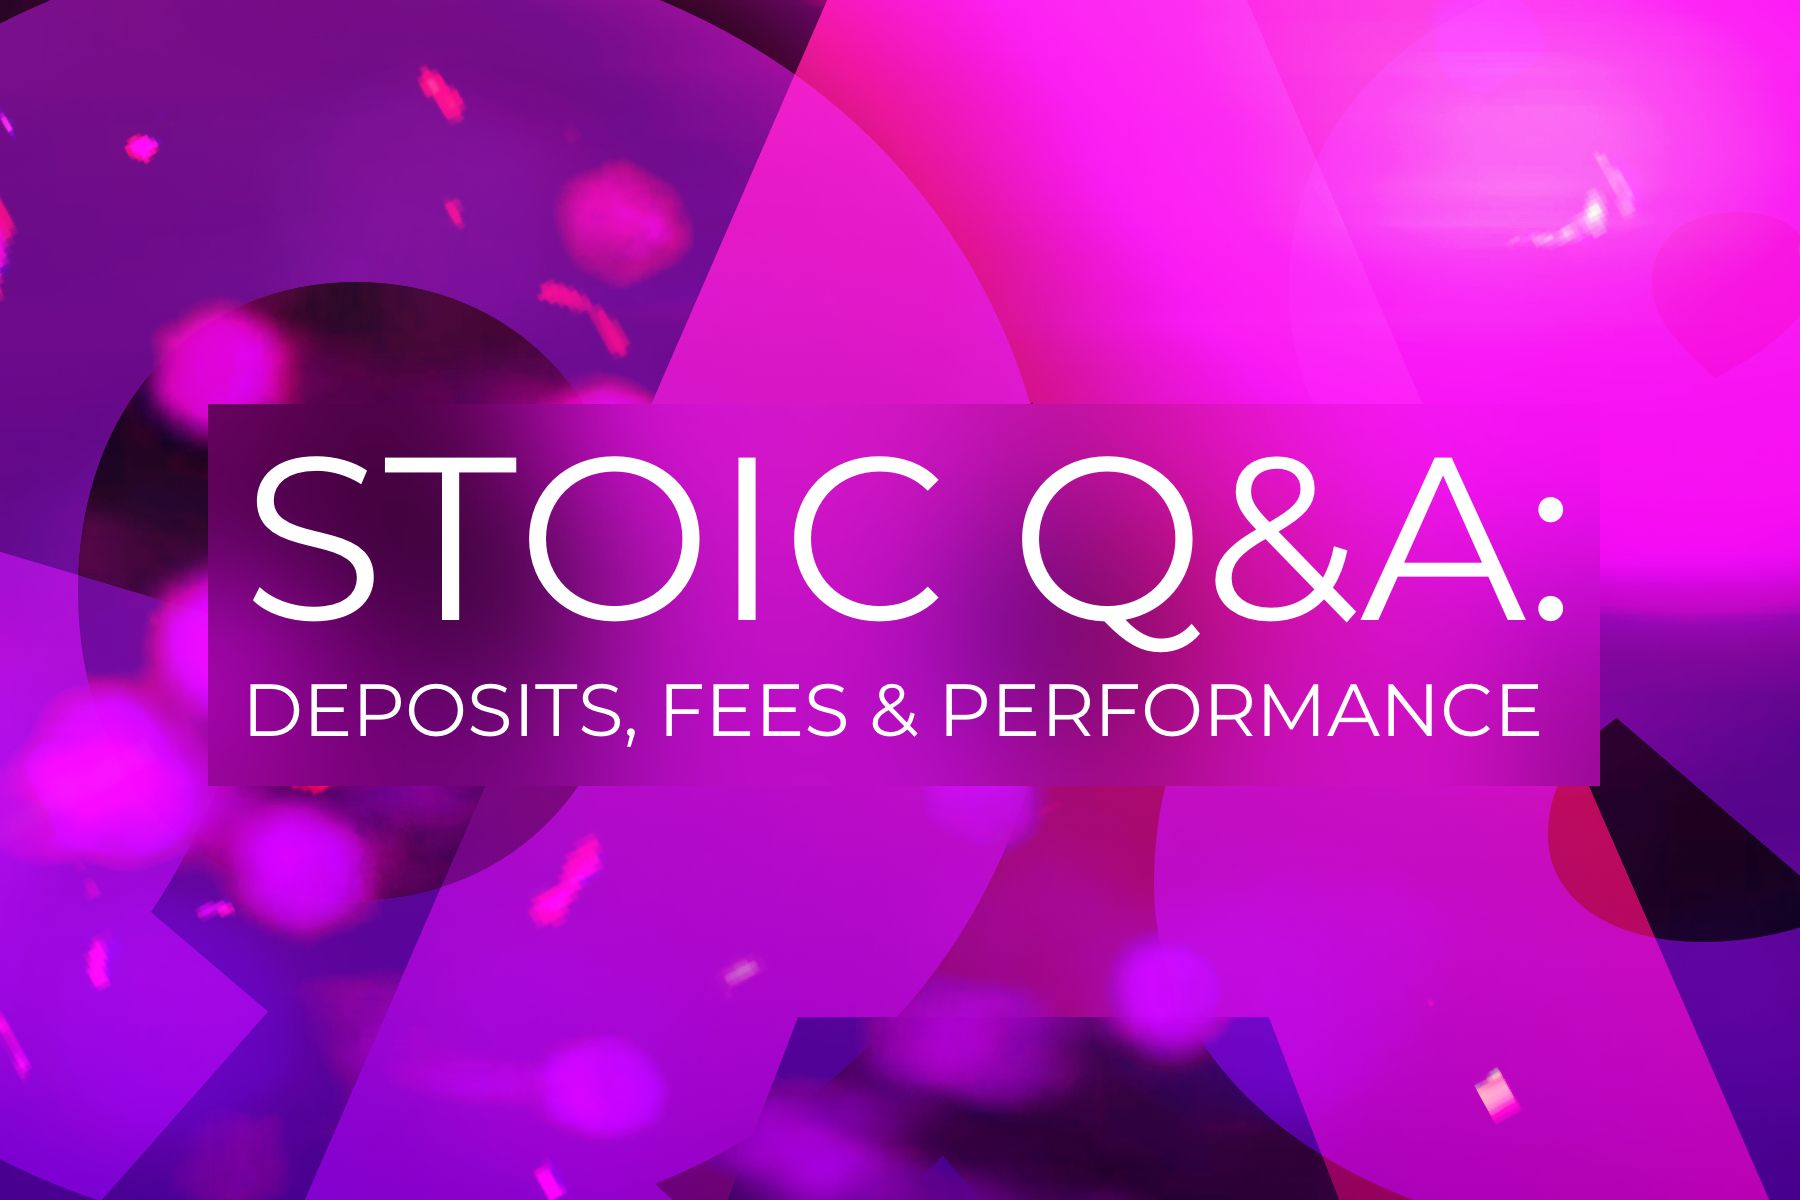 Stoic Q&A: everything you wanted to know about deposits, fees, and performance